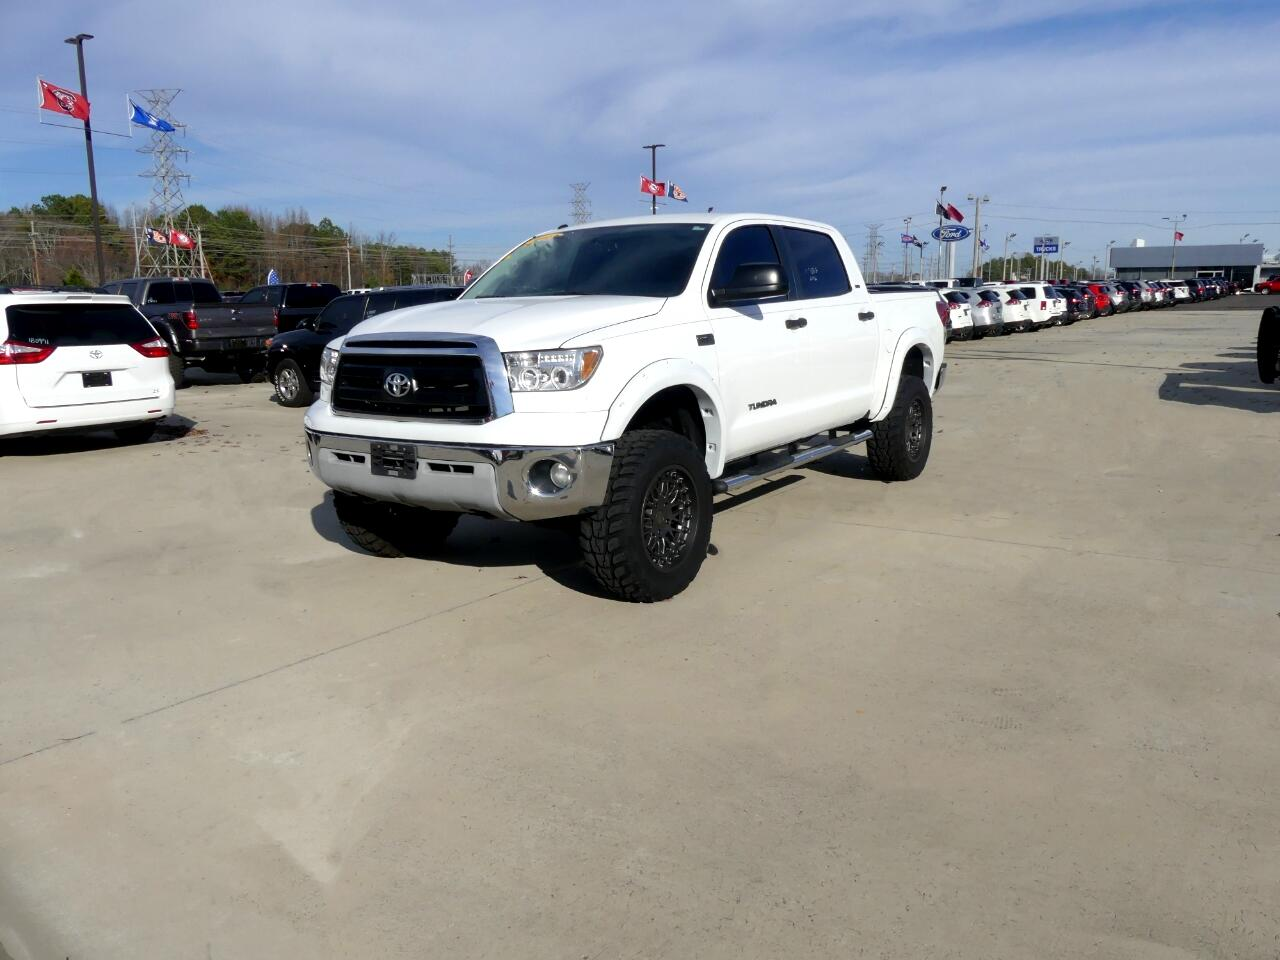 Toyota Tundra 2012 for Sale in Cullman, AL